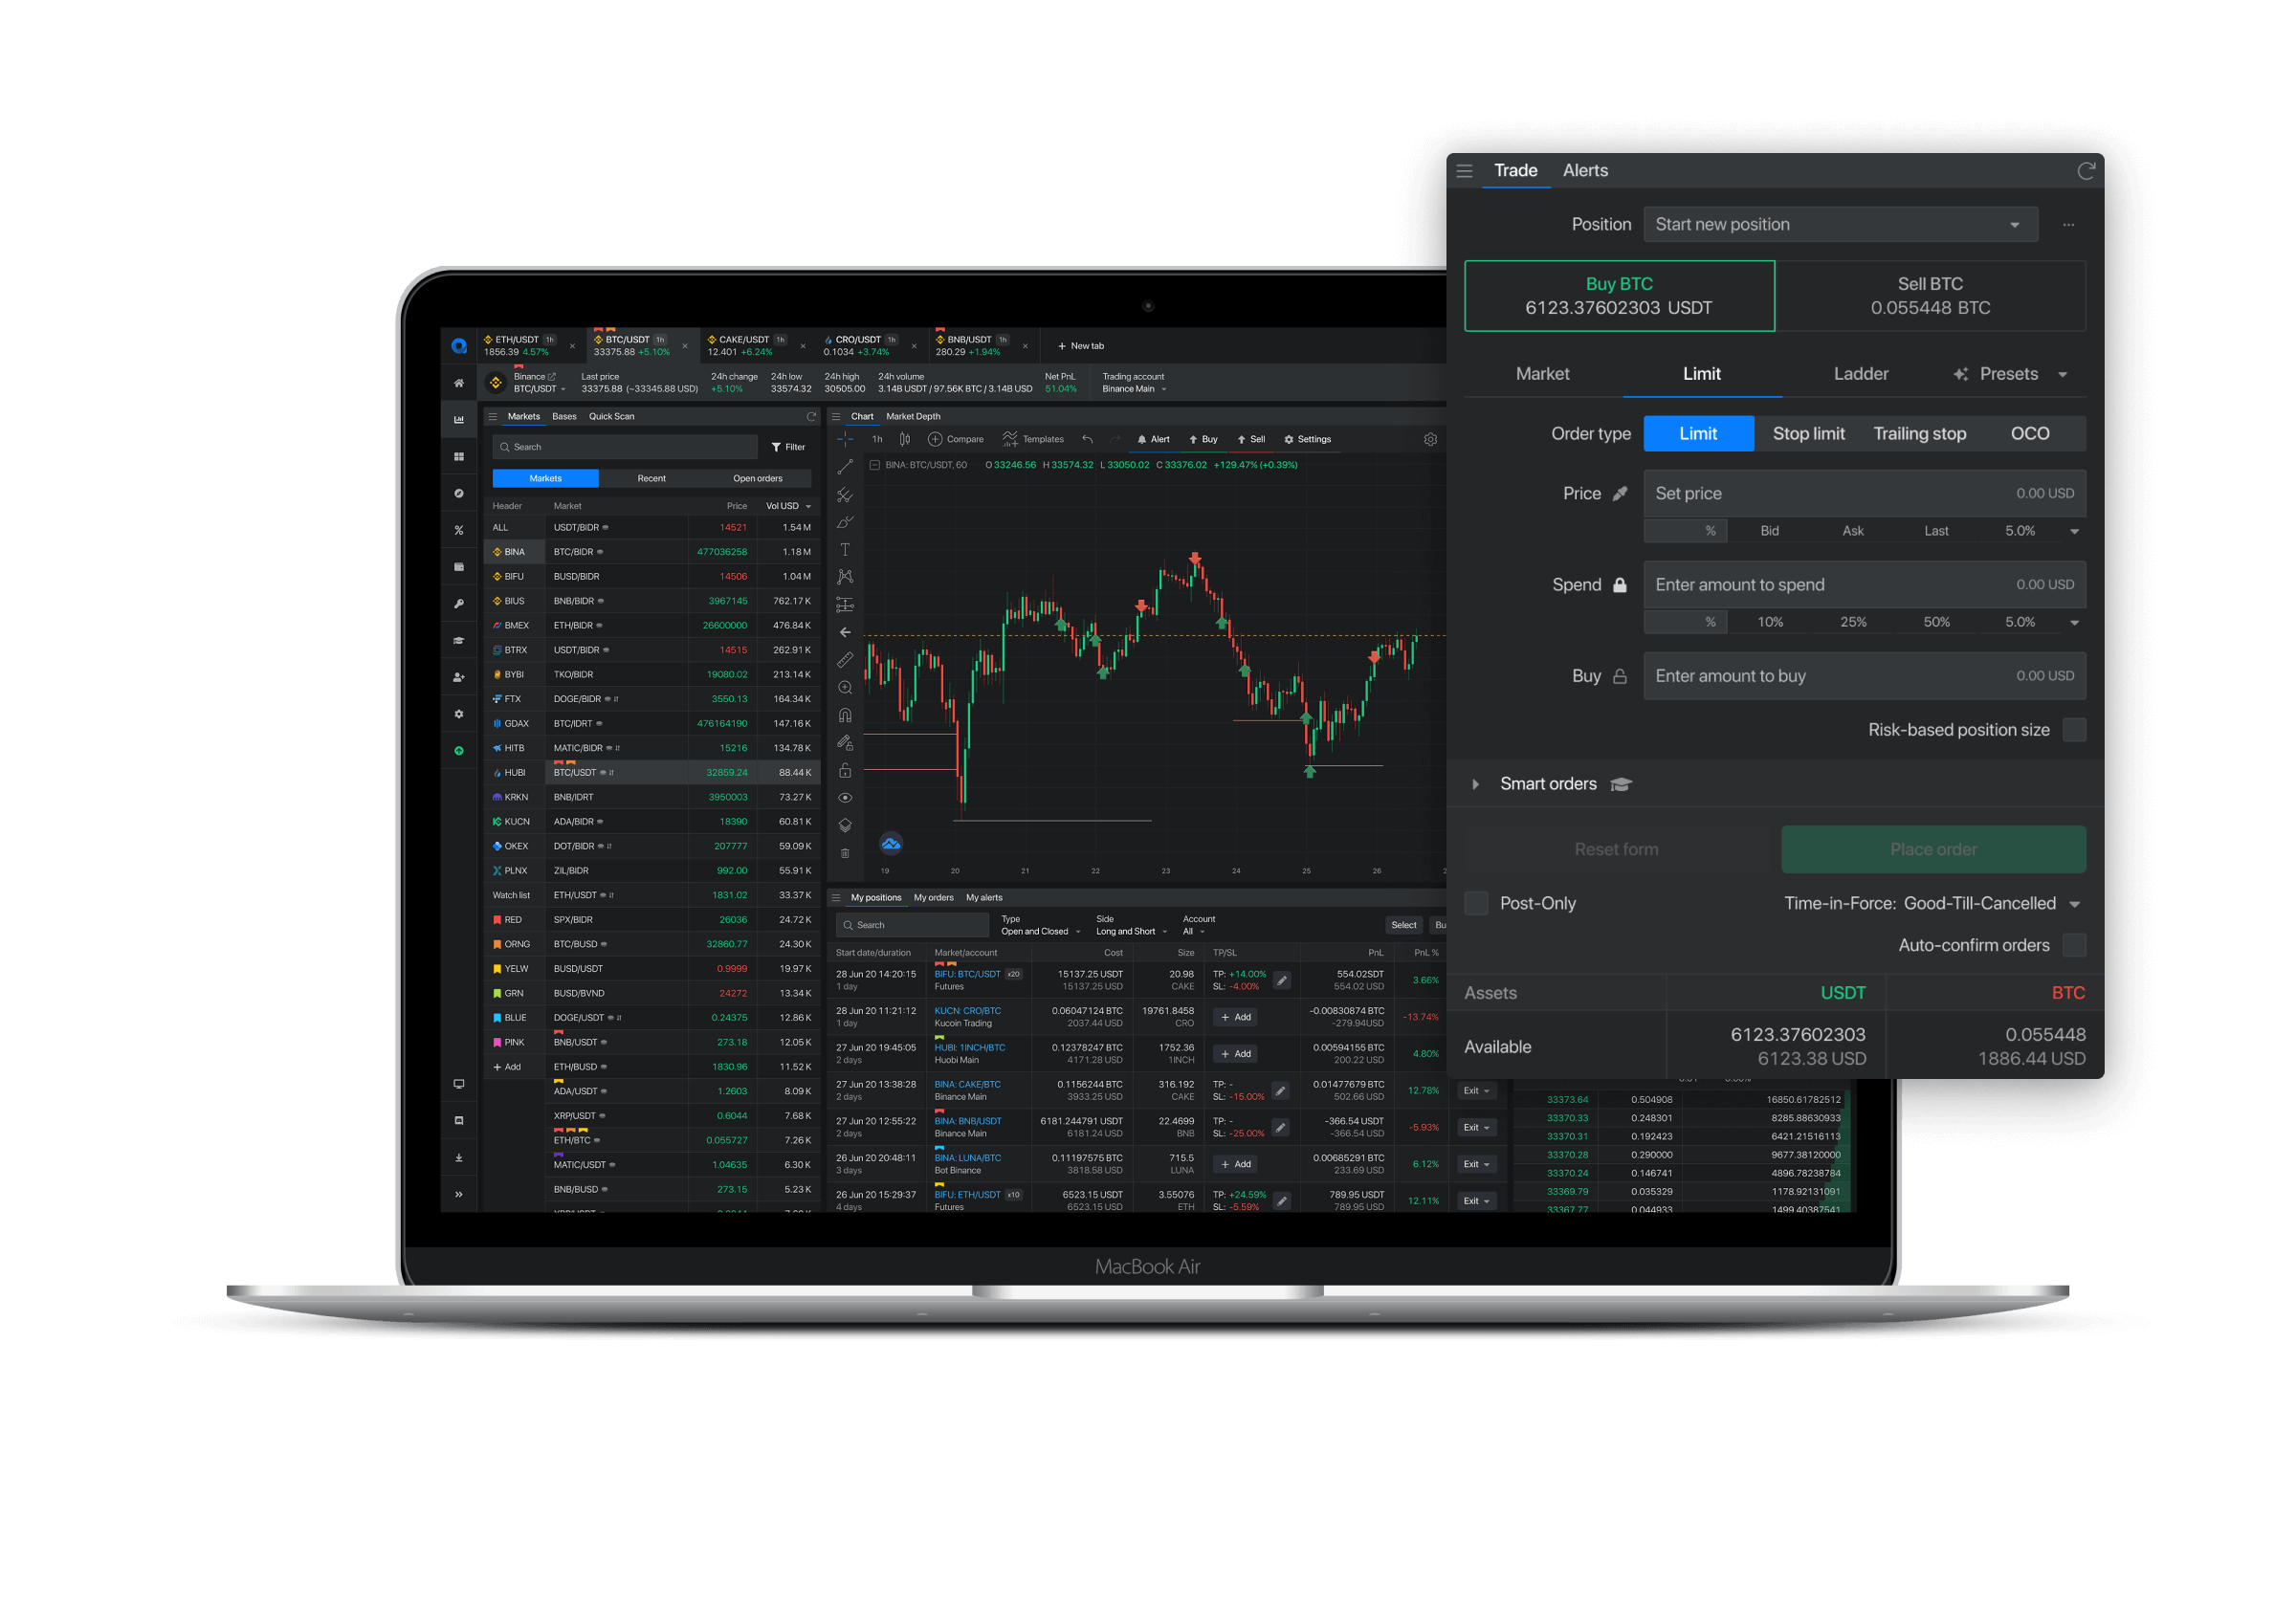 One interface to trade on multiple exchanges.